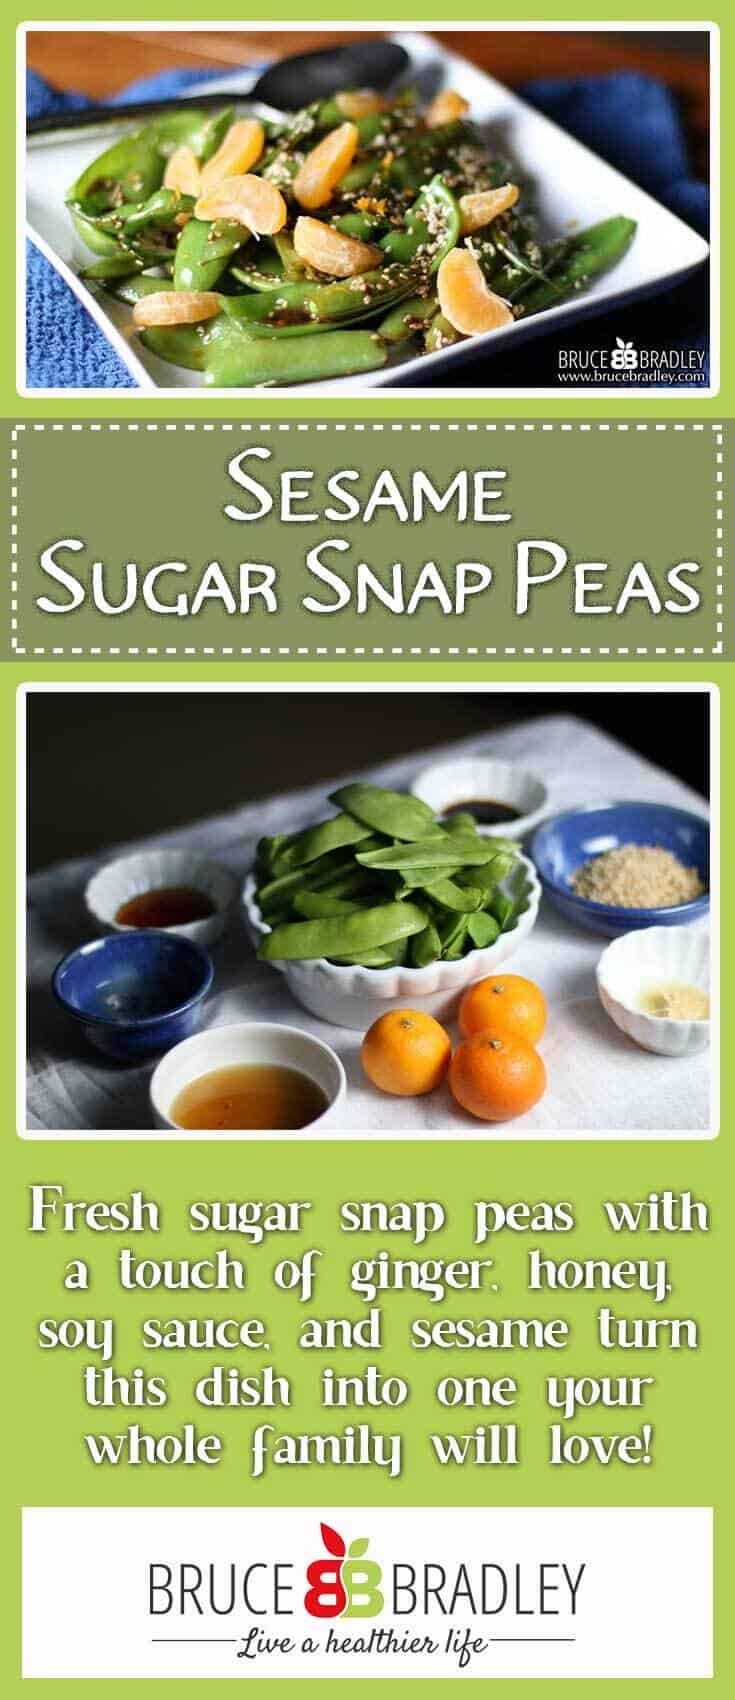 Bruce Bradley's Sesame Sugar Snap Pea recipe features fresh sugar snap peas with a touch of ginger, honey, soy sauce, and sesame that turn this dish into one your whole family will love!